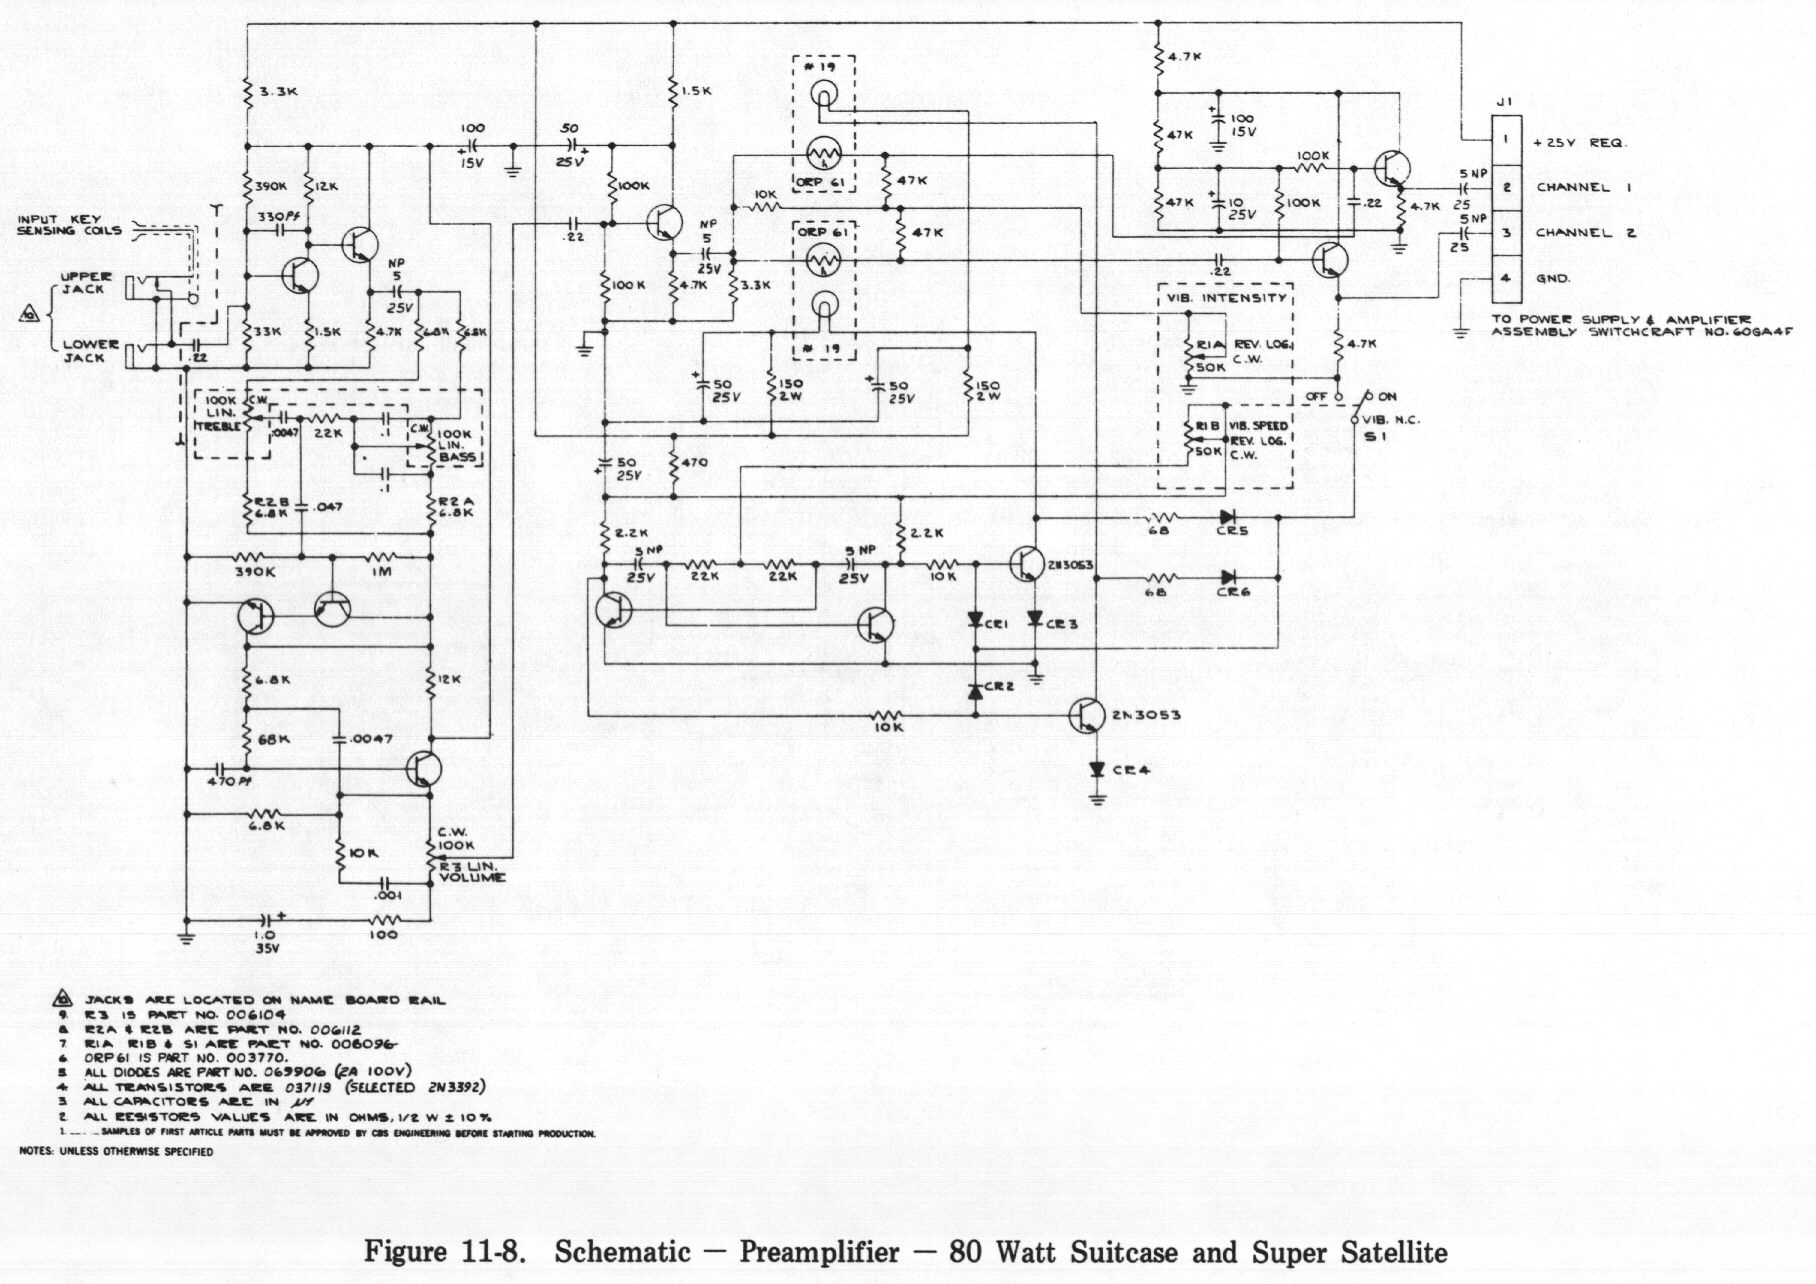 hight resolution of fig11 8 chapter 11 diagrams schematics and pictorials fender rhodes wiring diagram at cita